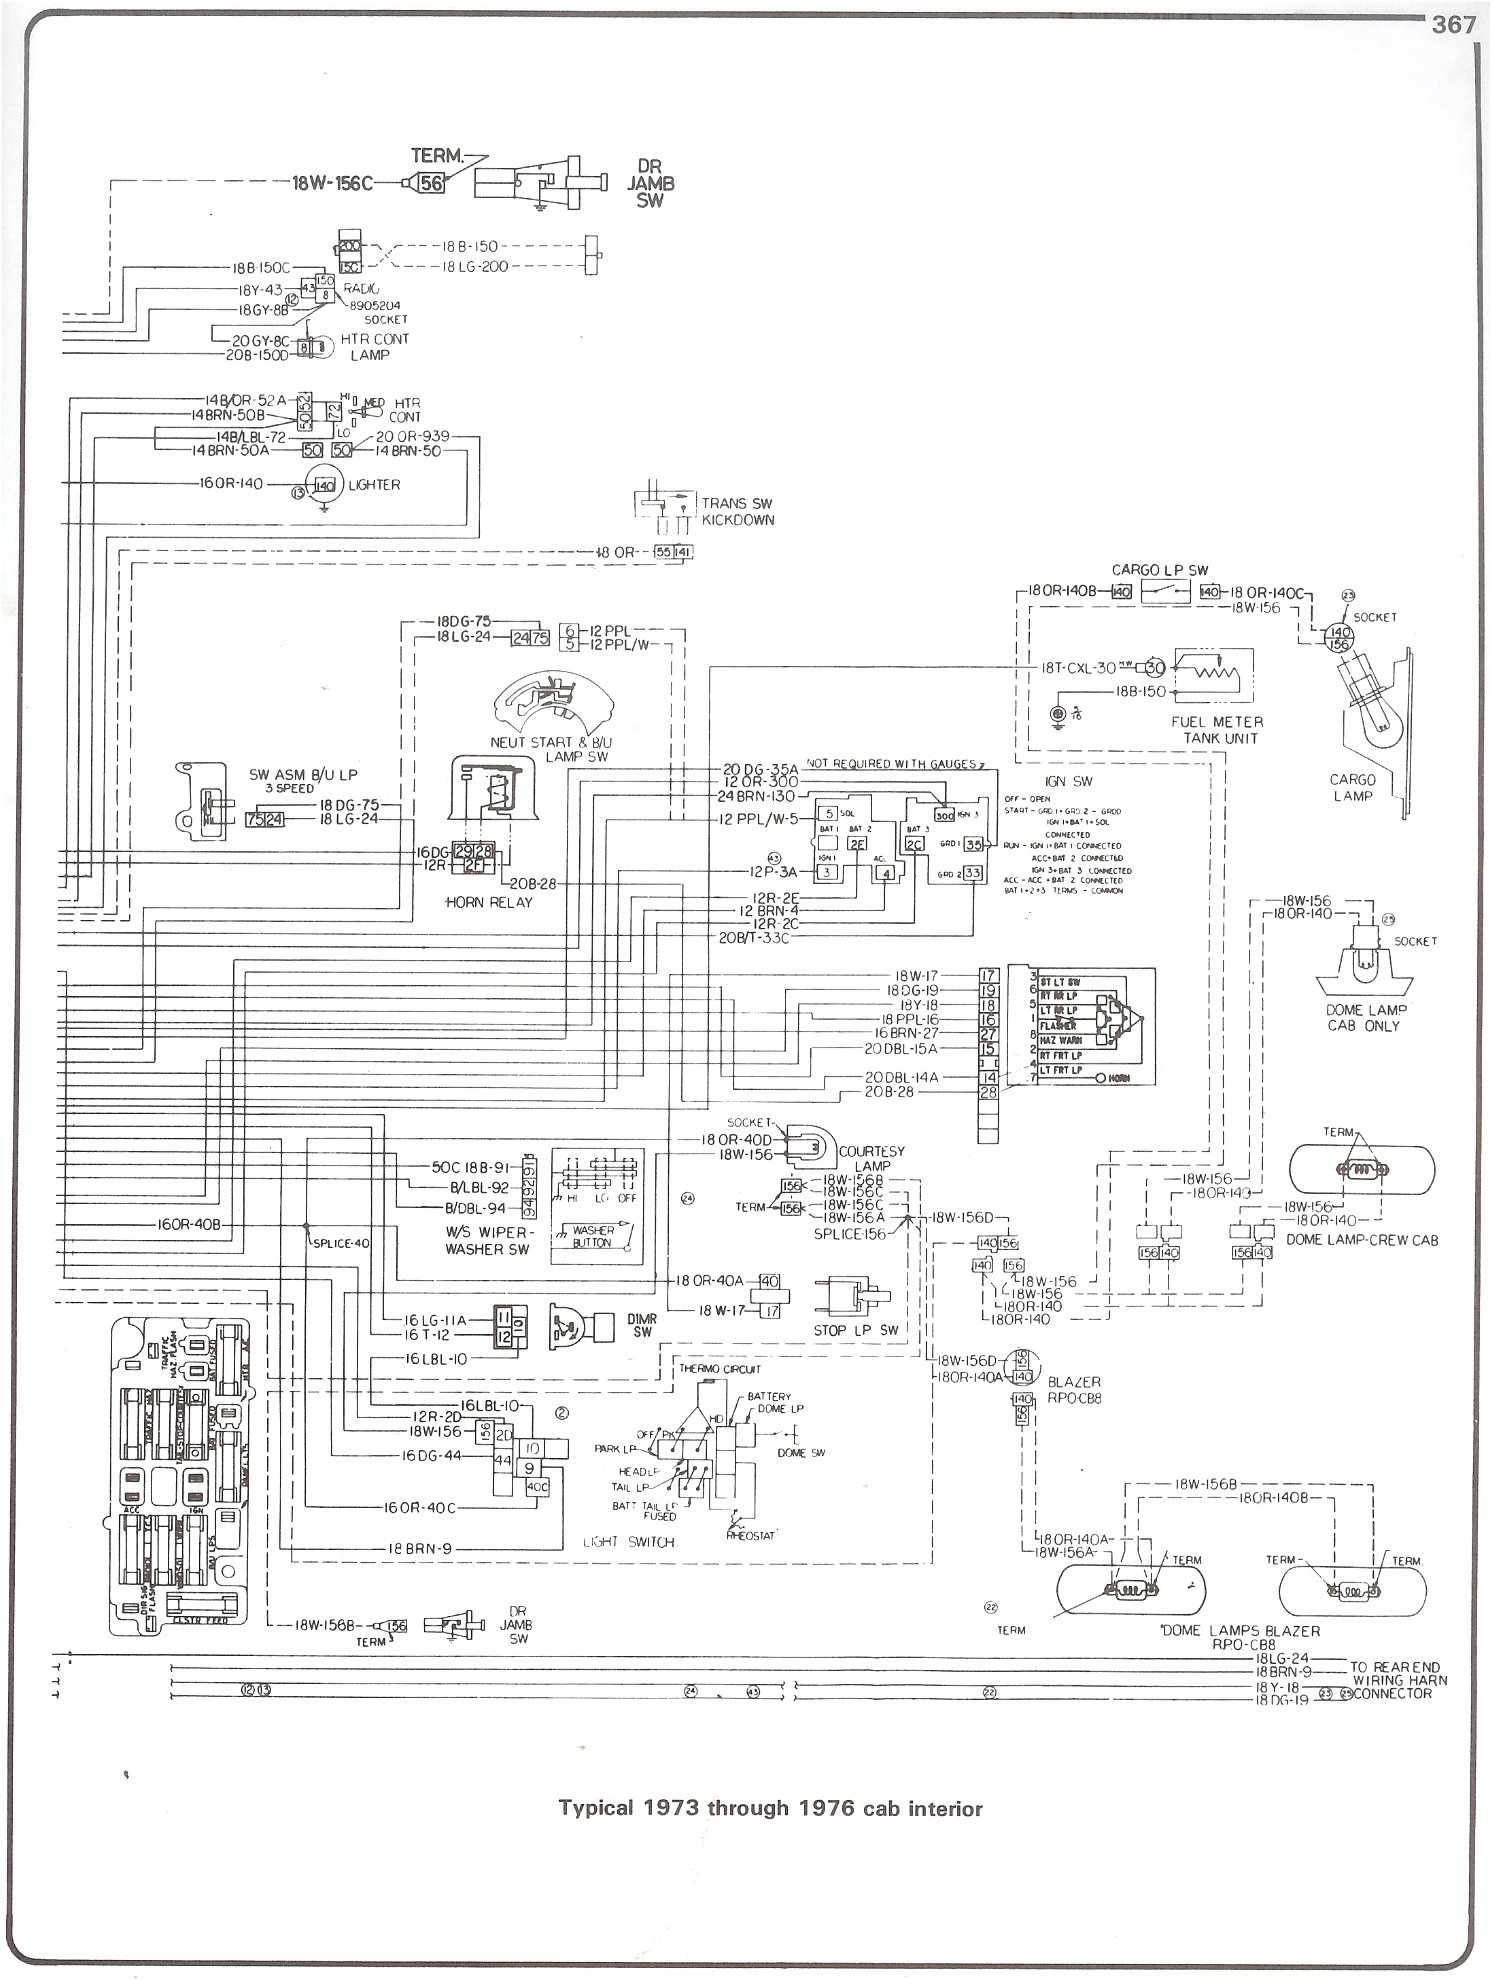 hight resolution of 1973 c10 wiring diagram schematic wiring diagrams mercury wiring harness 1973 c10 wiring harness